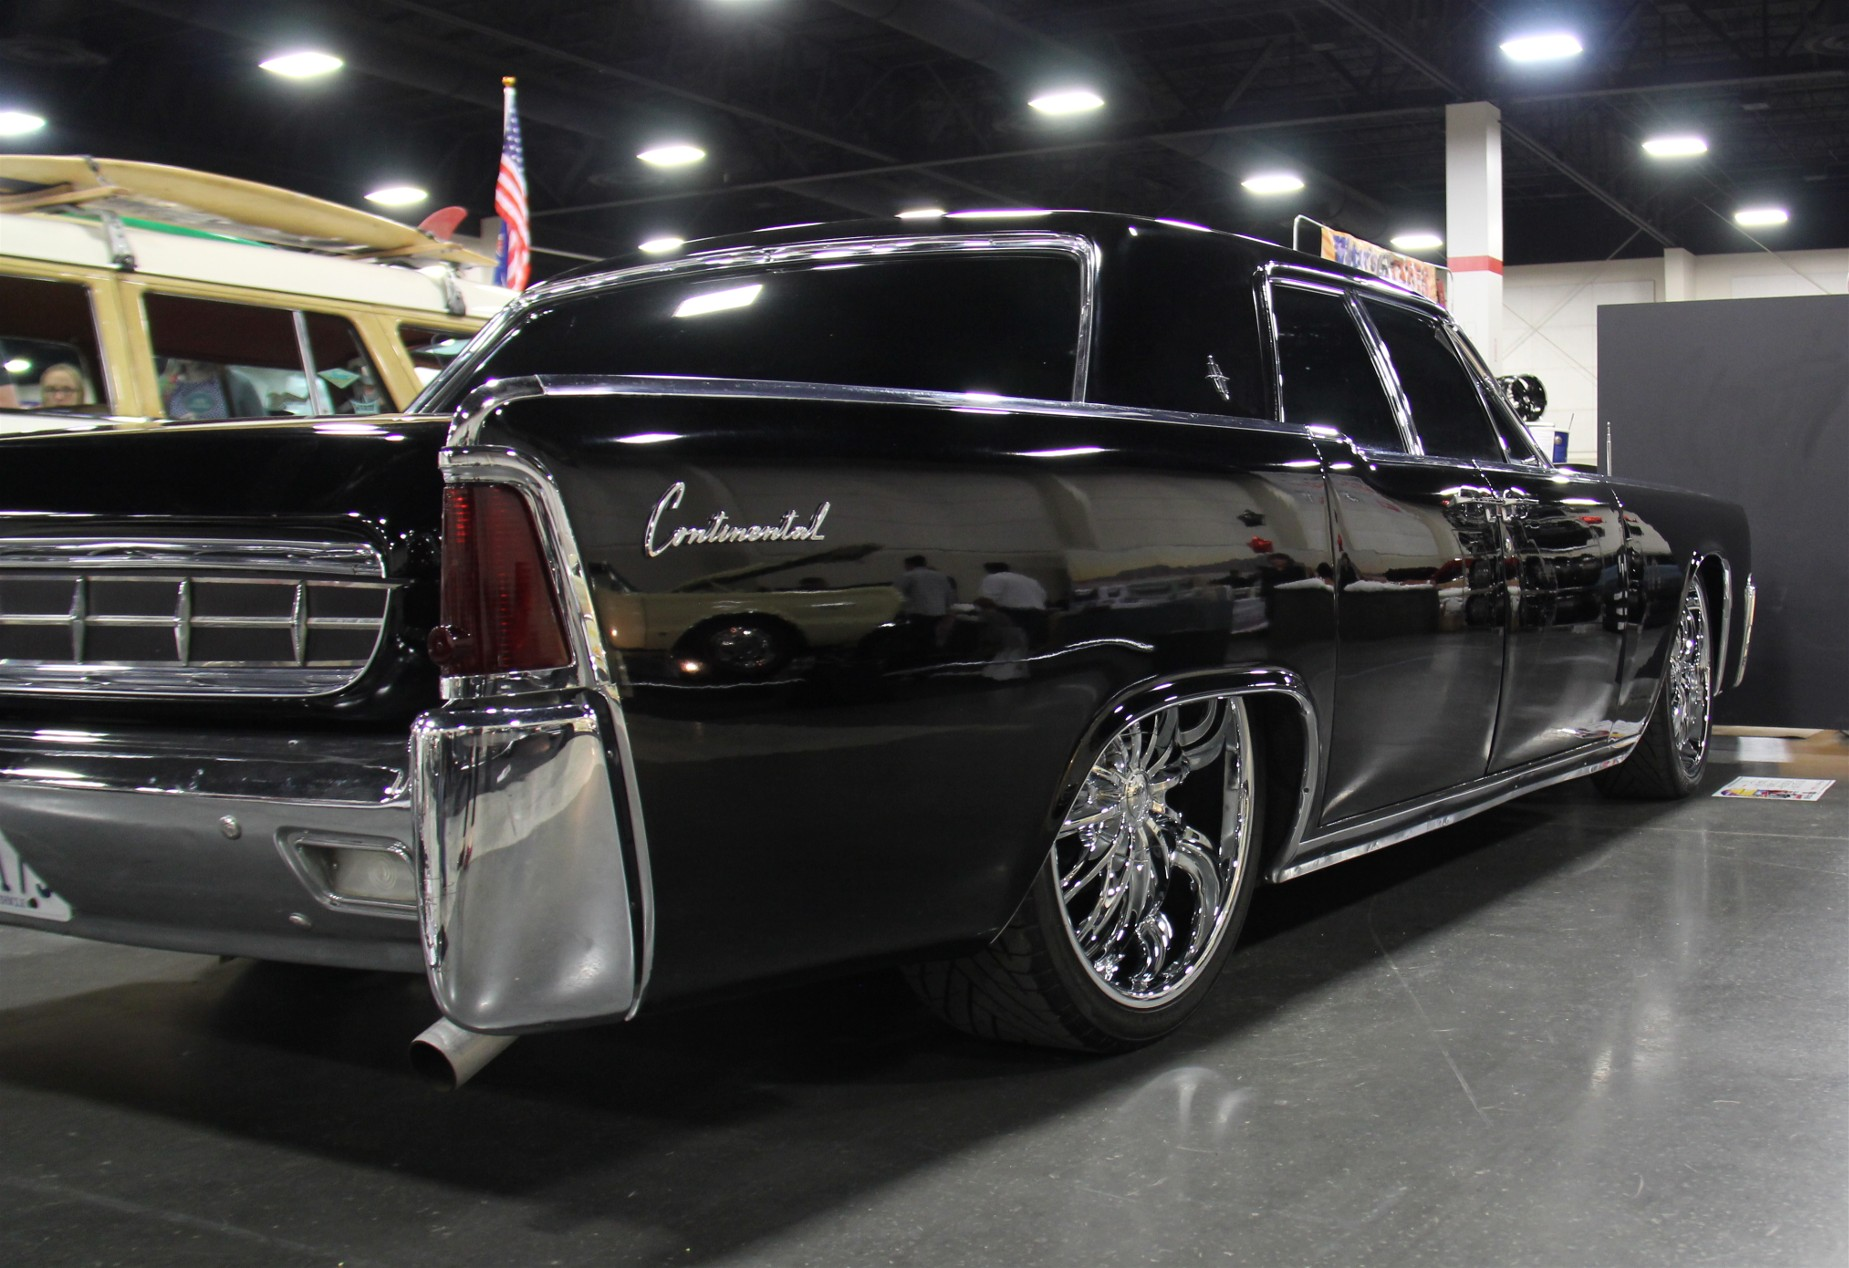 birdster69 1964 lincoln continental specs photos modification info at cardomain. Black Bedroom Furniture Sets. Home Design Ideas